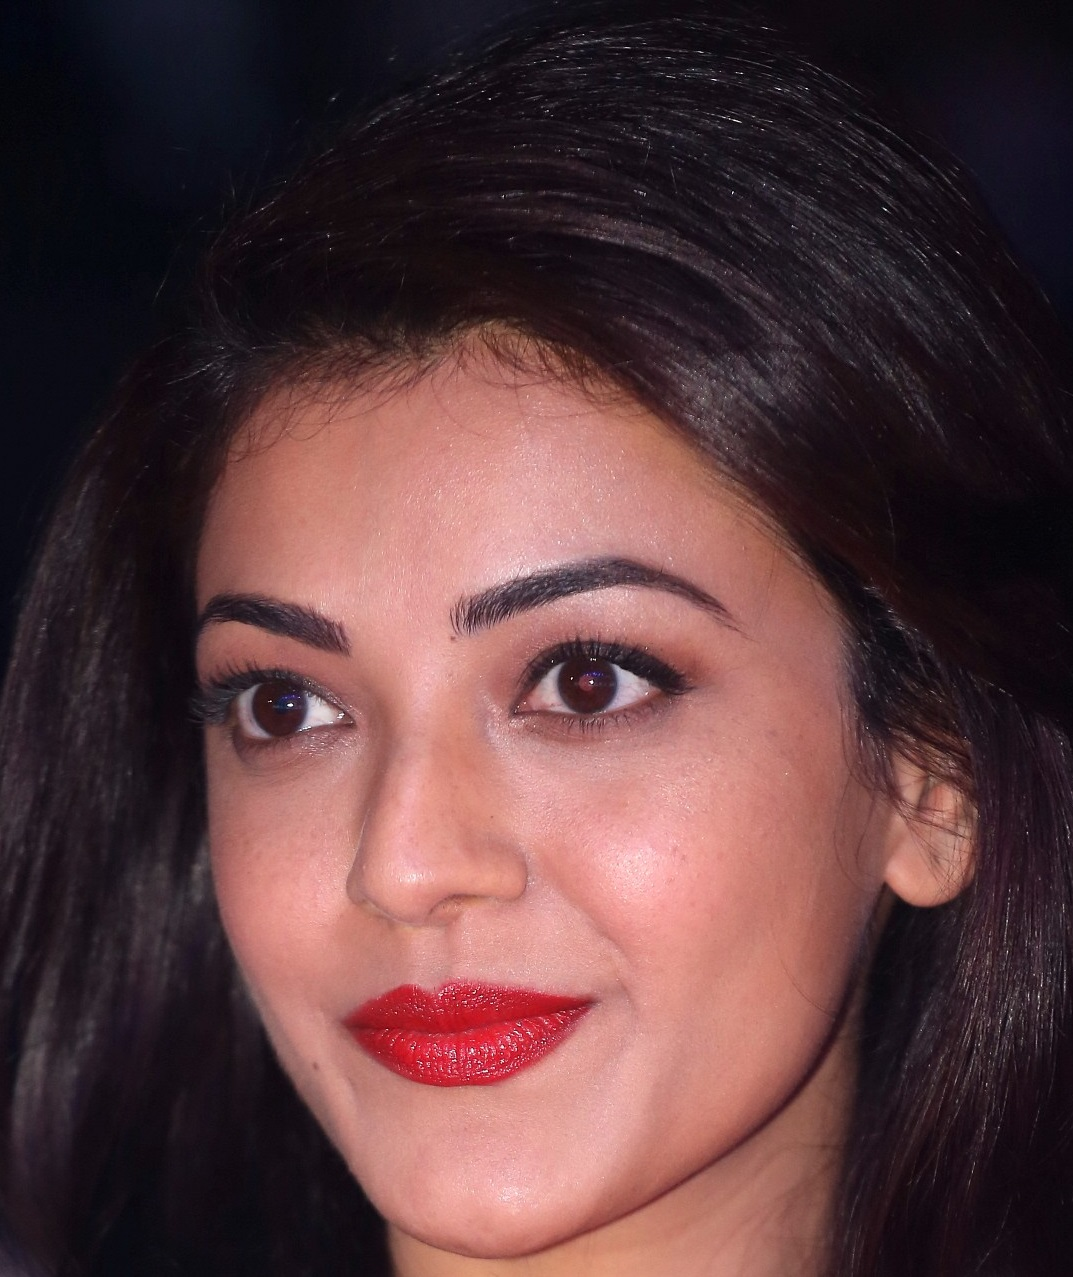 indian actress kajal aggarwal face close up photos - kajal aggarwal